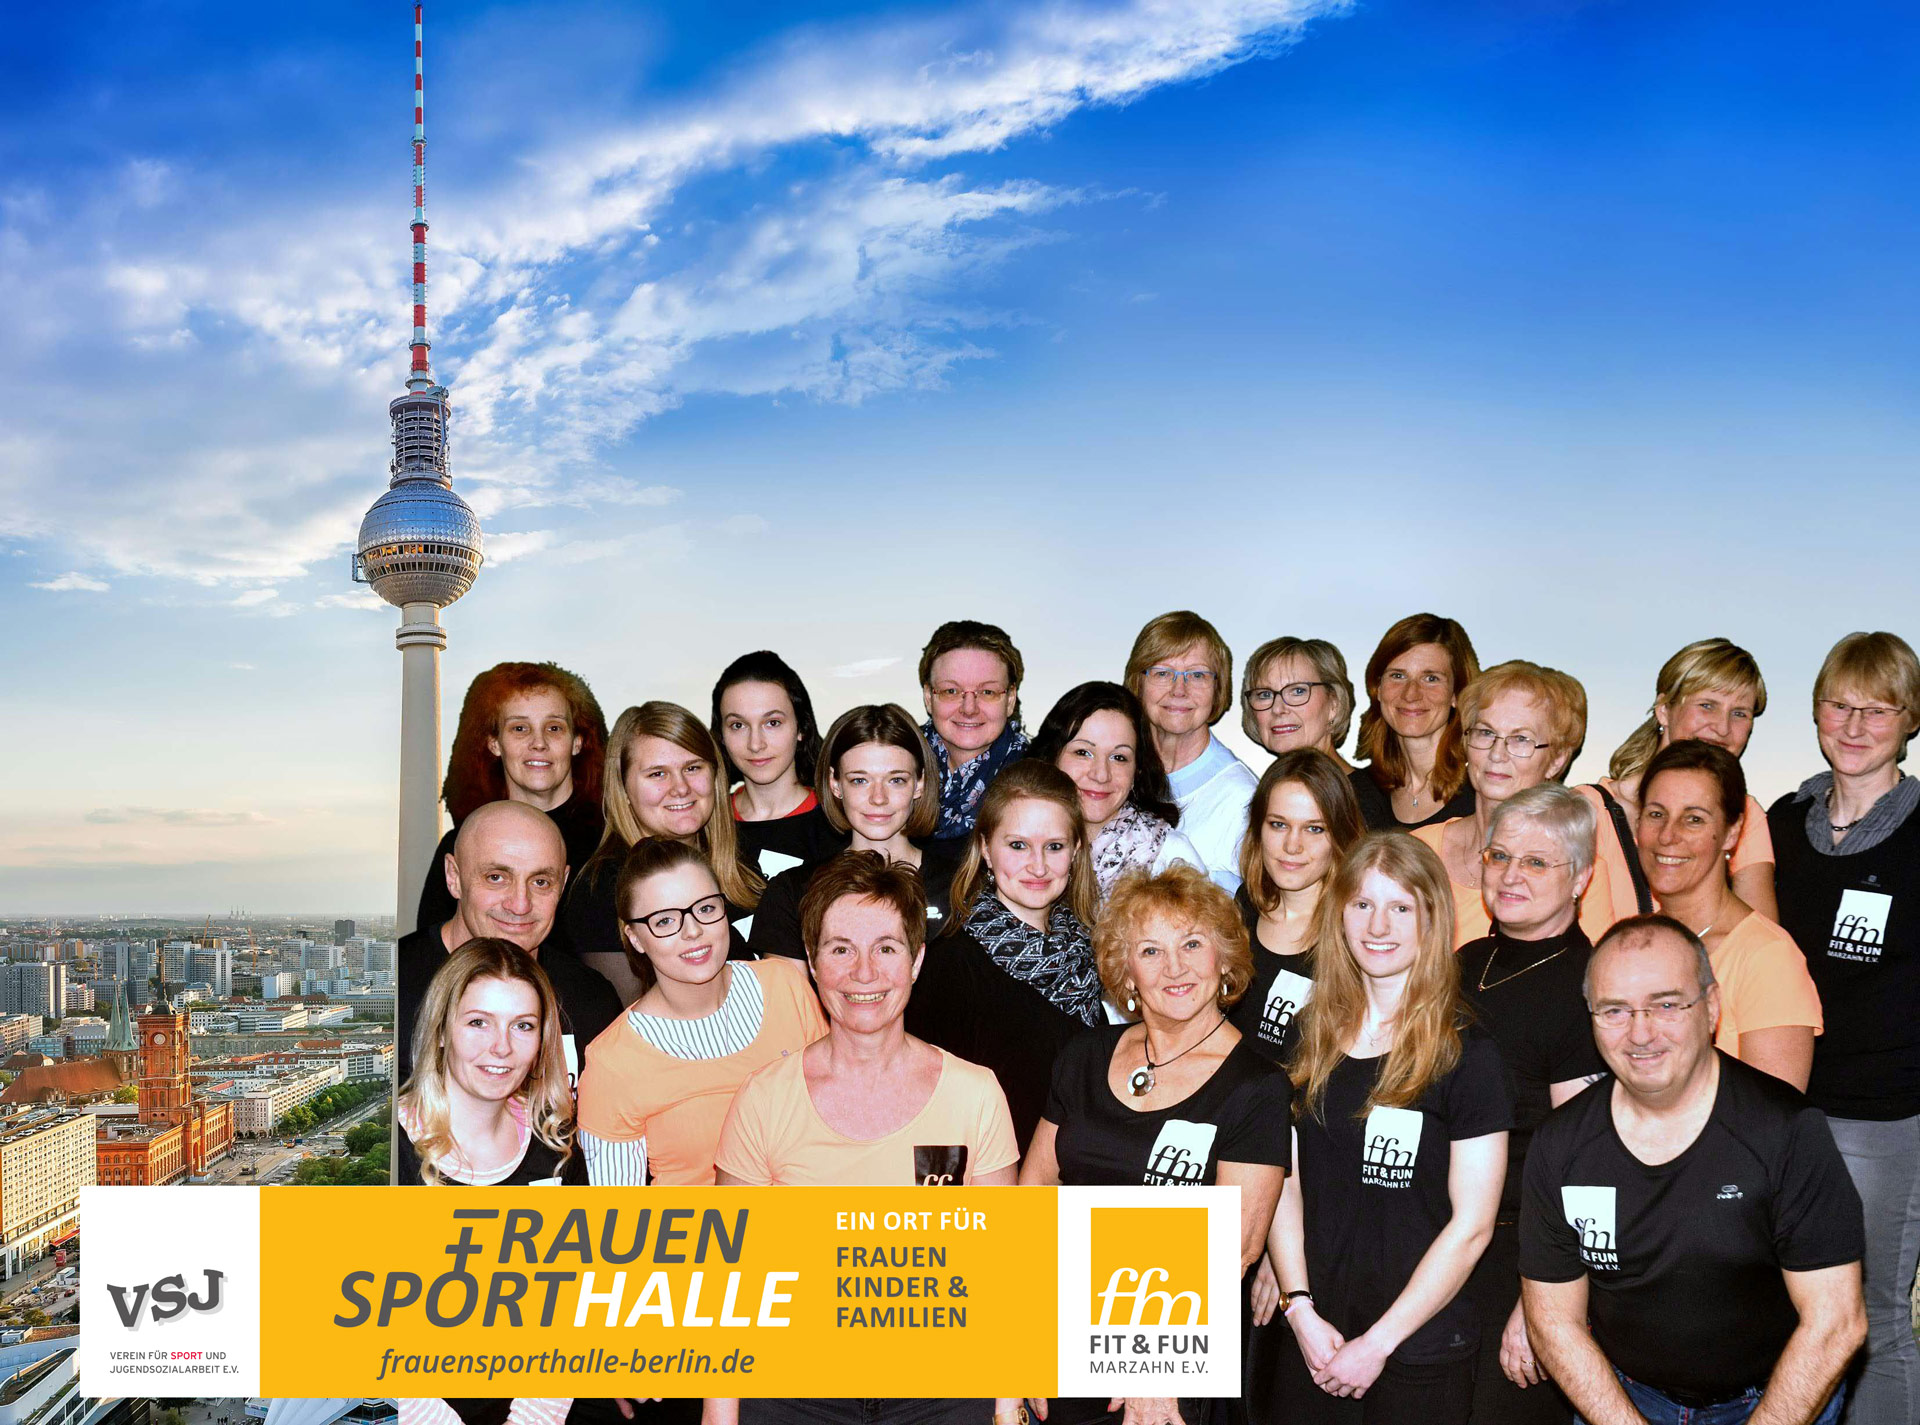 Frauensporthalle Teamfoto